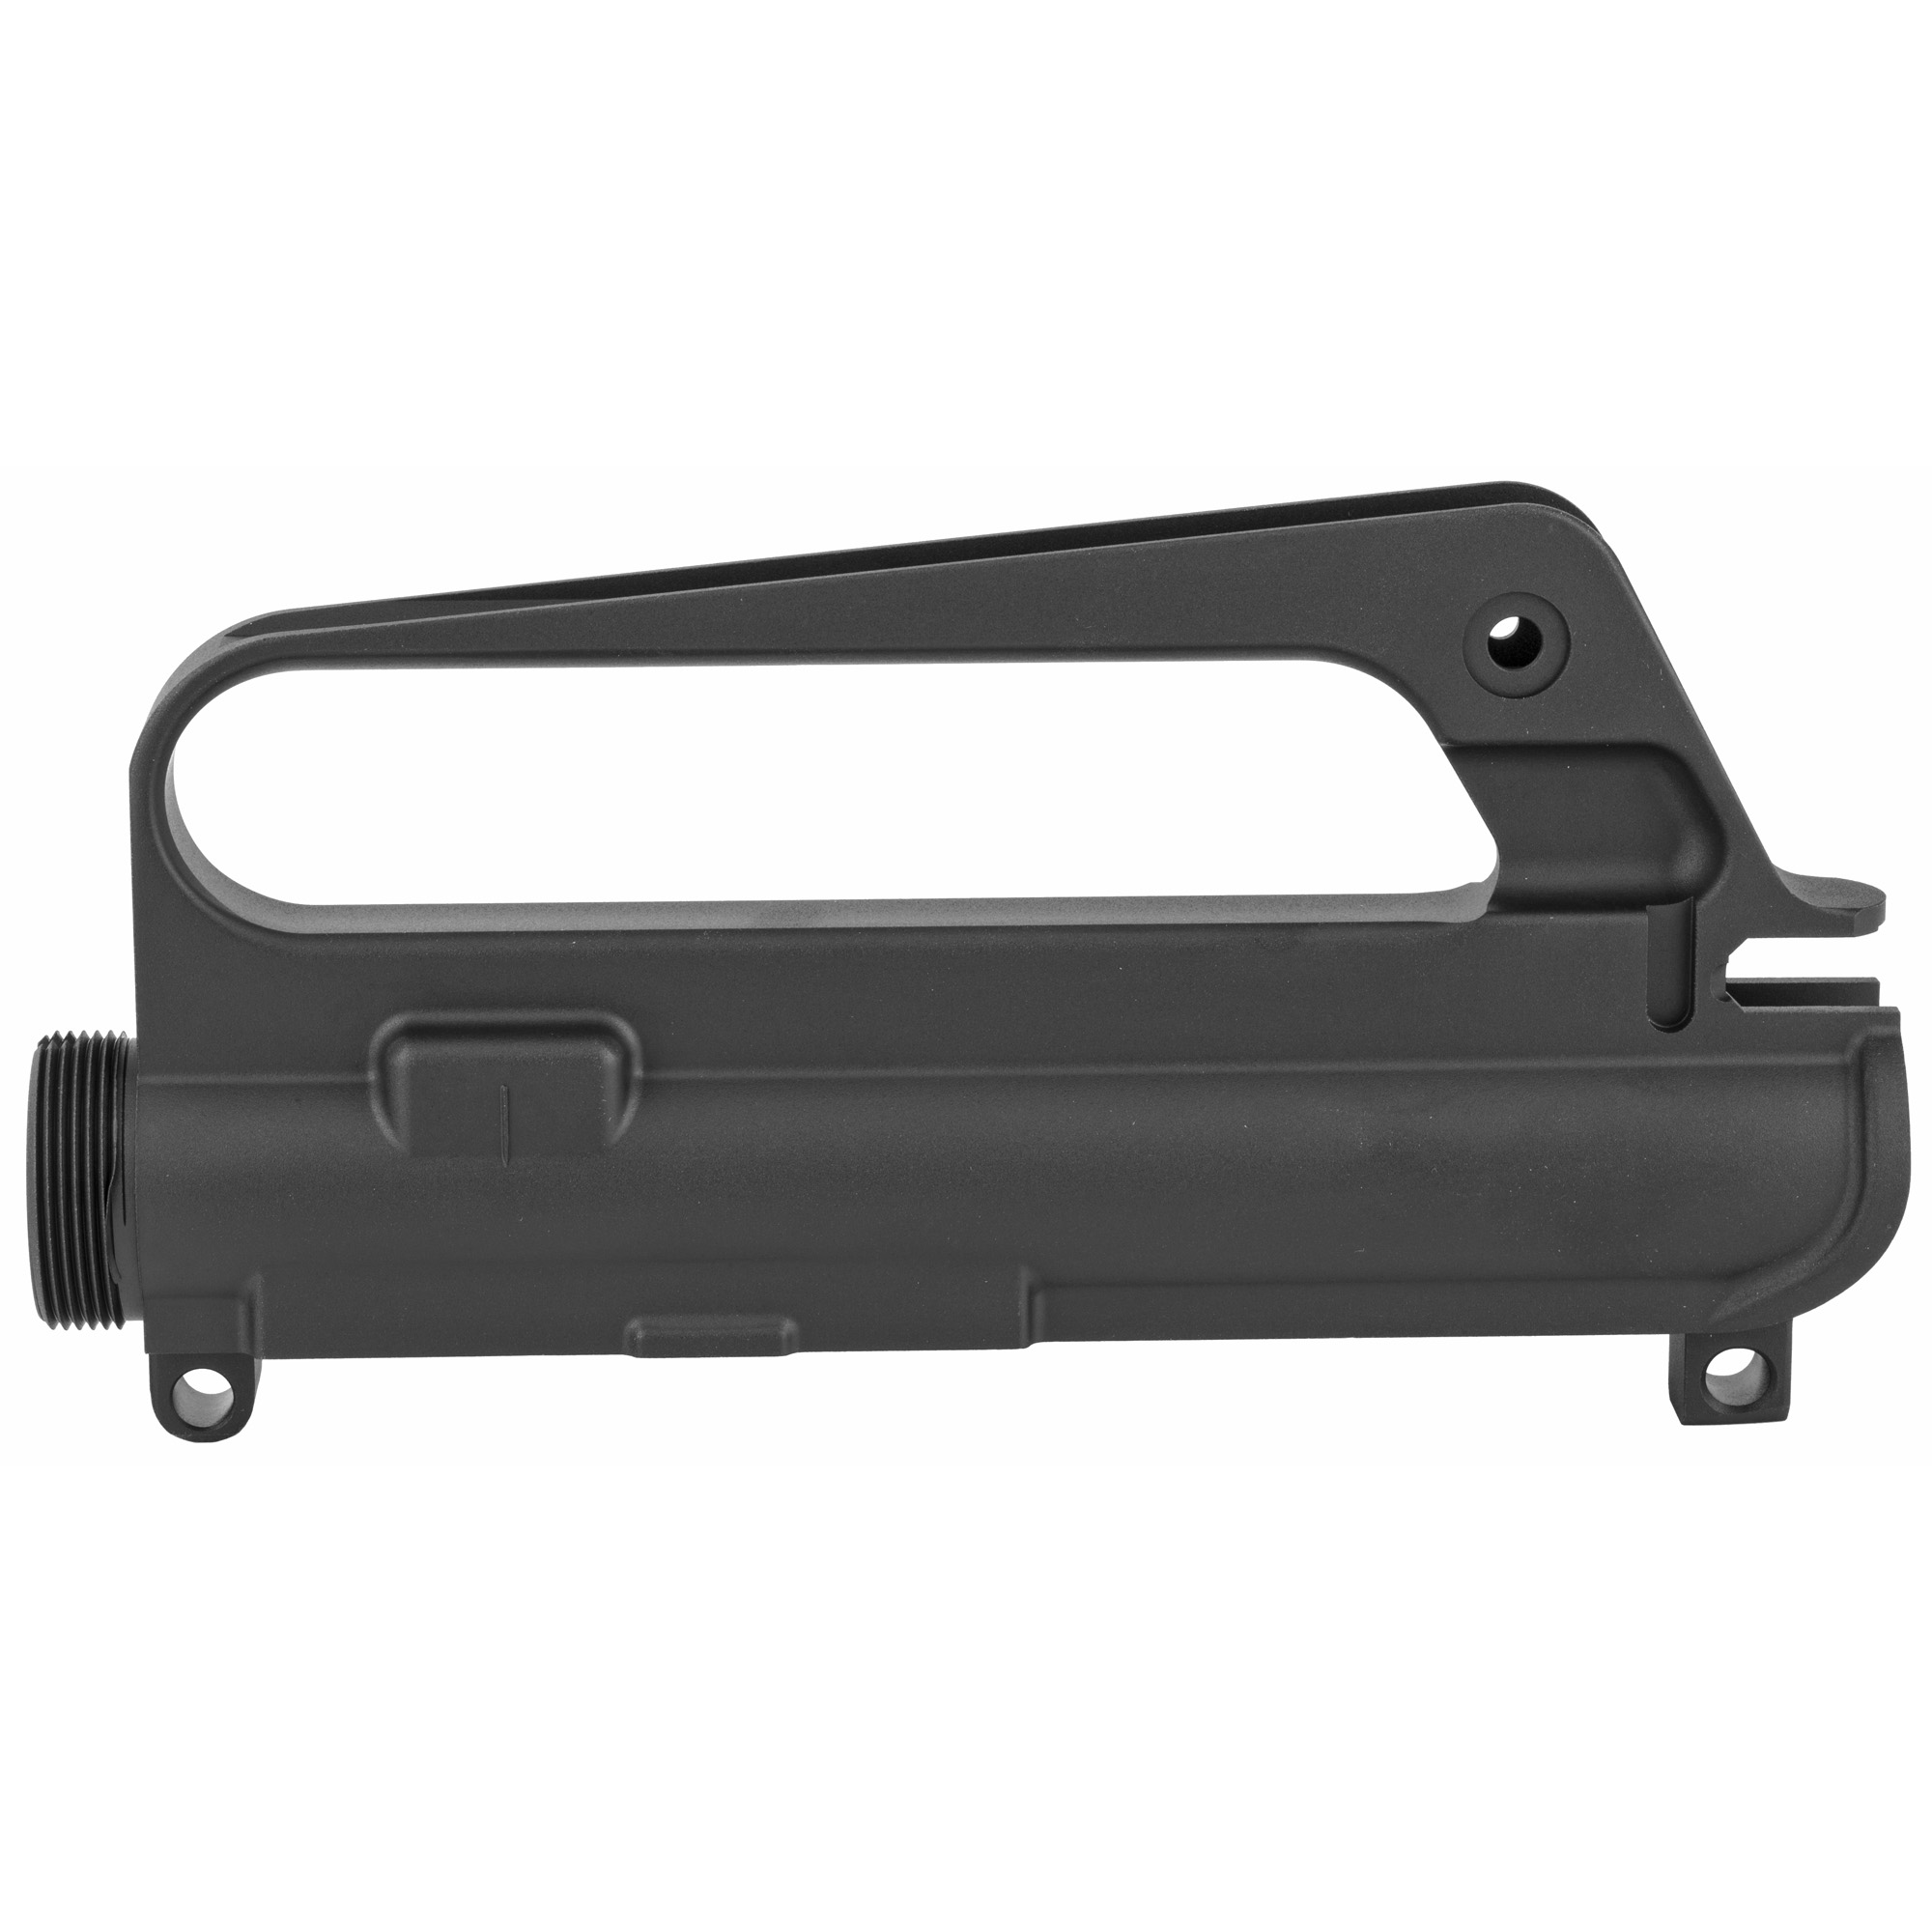 "Looking to build a high-quality retro looking AR? Start your project with a A1 stripped upper receiver with M4 Feed Ramp. Comes with the standard features of a Mil-Spec upper receiver and is forged from 7075-T6 aluminum with a black hard coat anodized"" tough finish. The A1 carry handle is ready for adjustable rear sight. The upper has a shell deflector and forward assist housing and will accept a standard dust cover. The C7 style carry handle allows mounting a scope from the era for a retro look. This upper has an M4 feed ramp. Use with any Mil-Spec lower receiver."